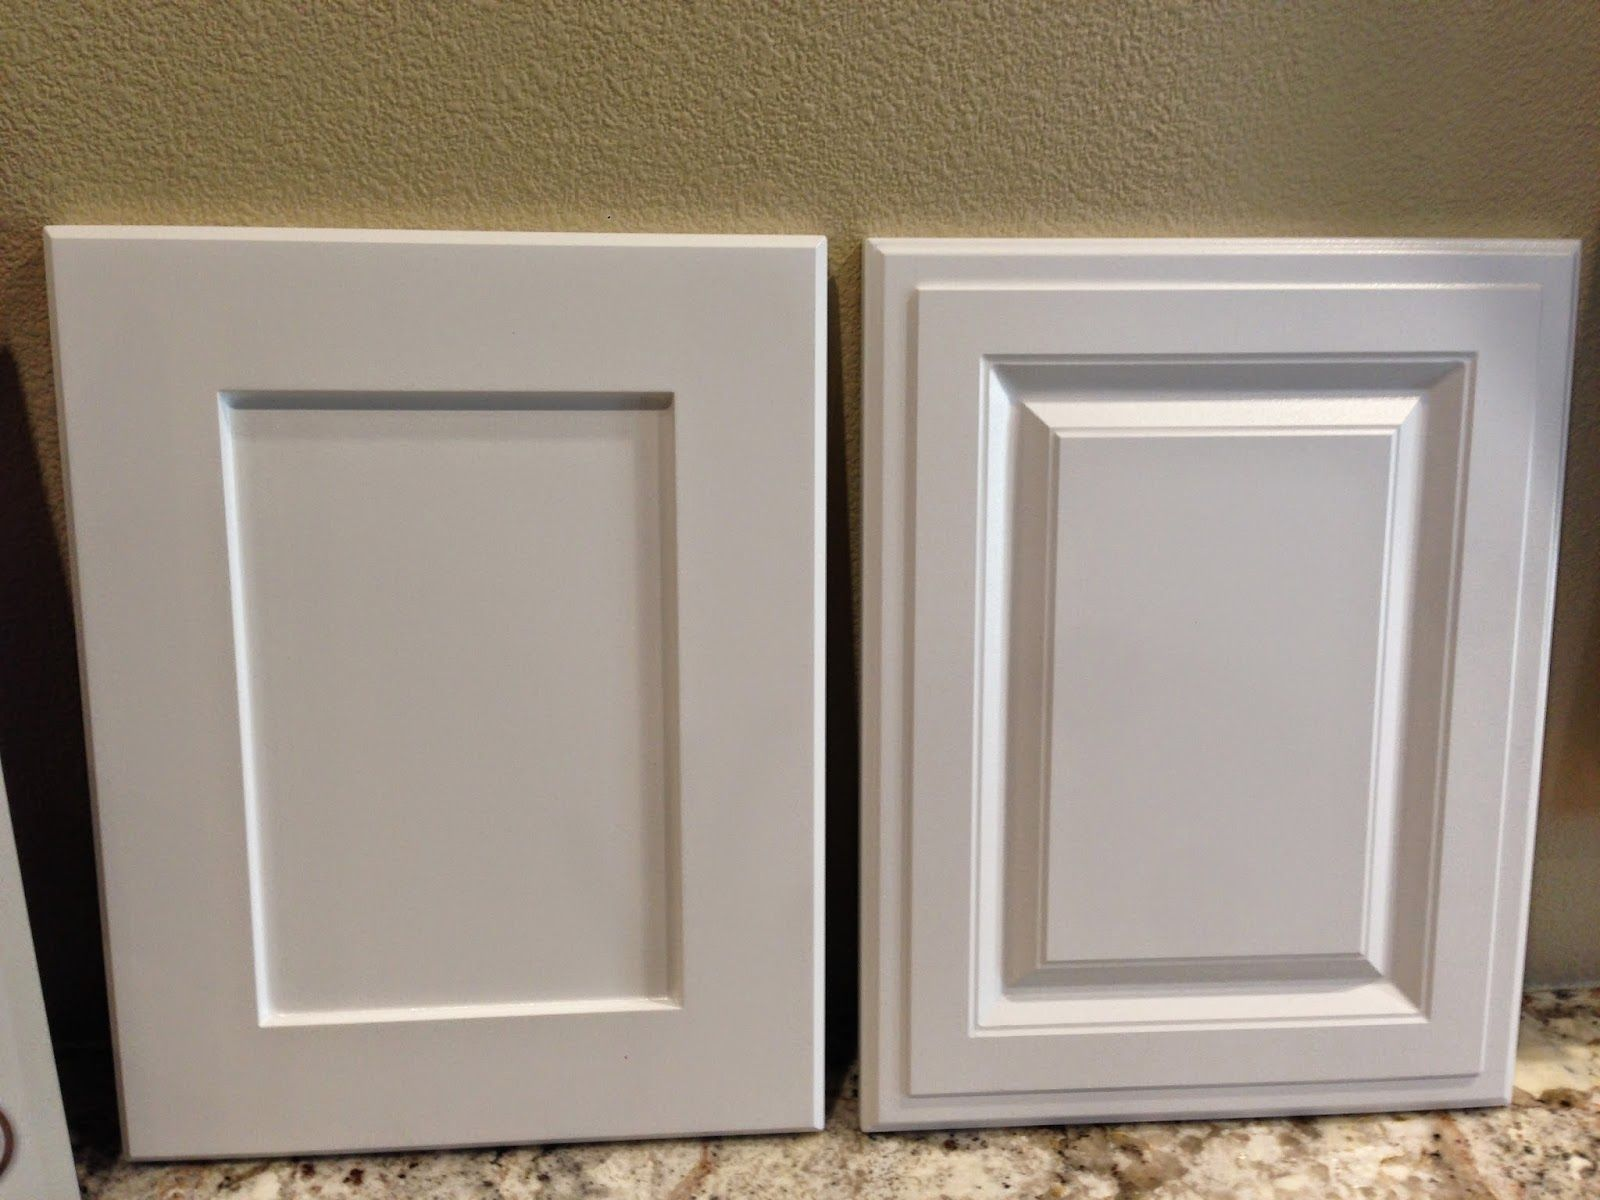 Shaker Style Kitchen Cabinets Vs Raised Kitchen Cabinets Shaker Style Cabinets Shaker Style Kitchens Shaker Style Kitchen Cabinets